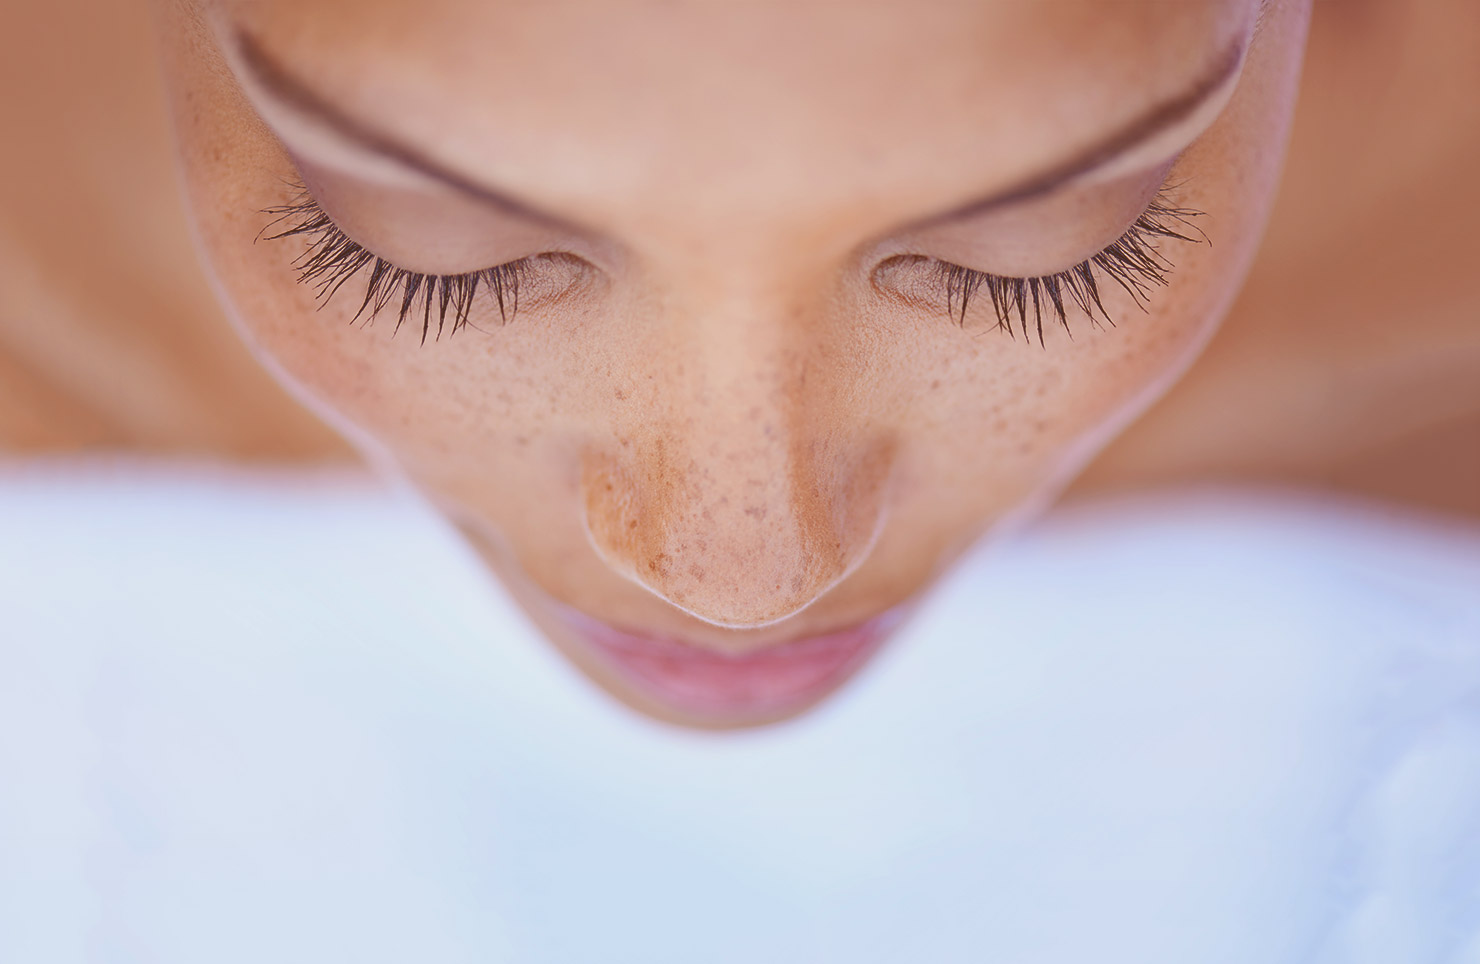 What kind of music do spa therapists listen to?